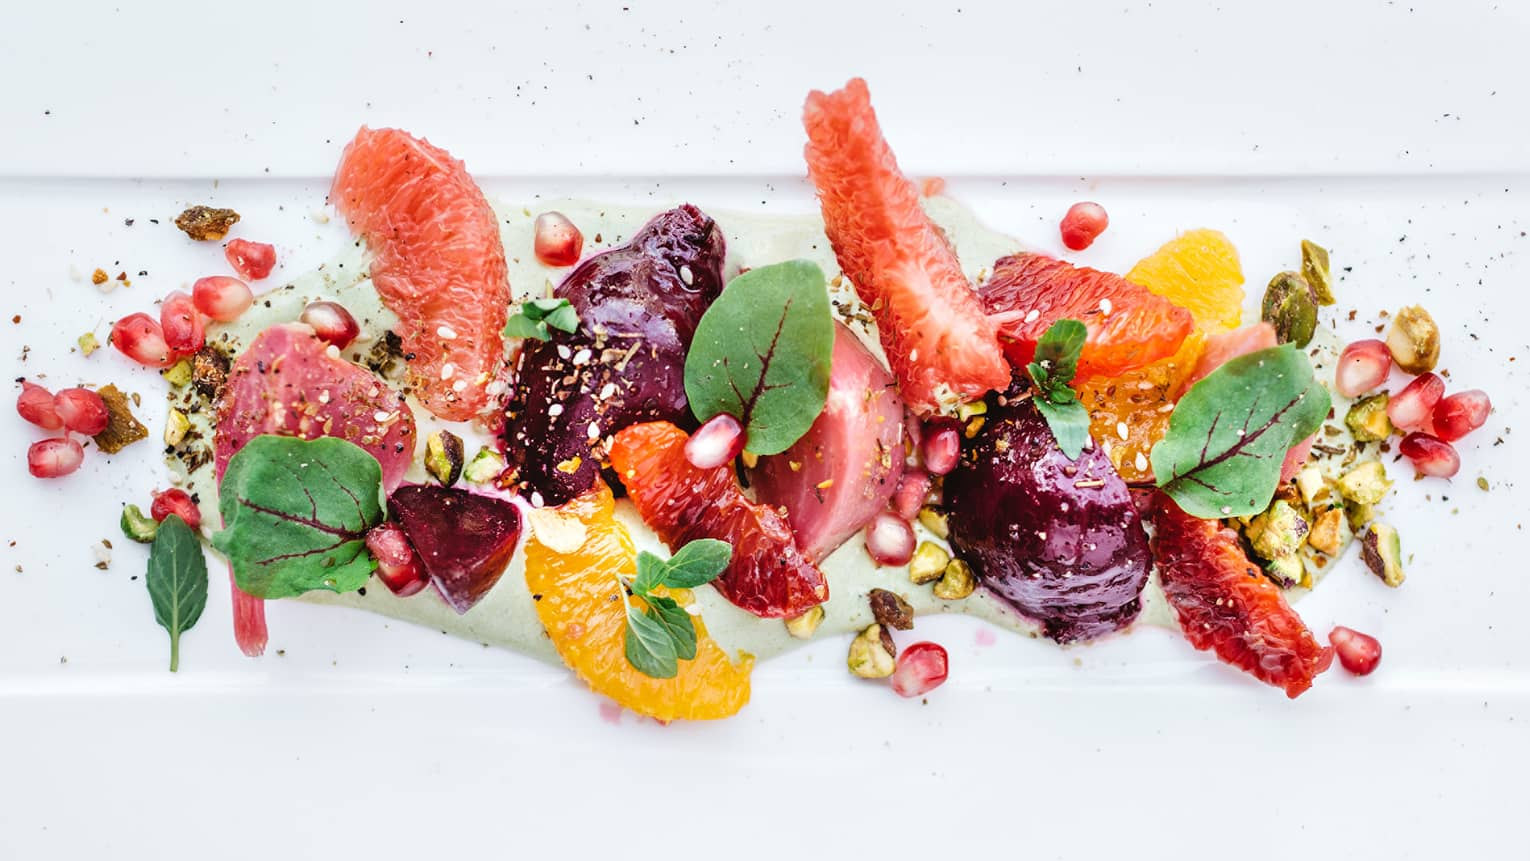 Roast beet salad, grapefruit wedges, pomegranate seeds on white dish